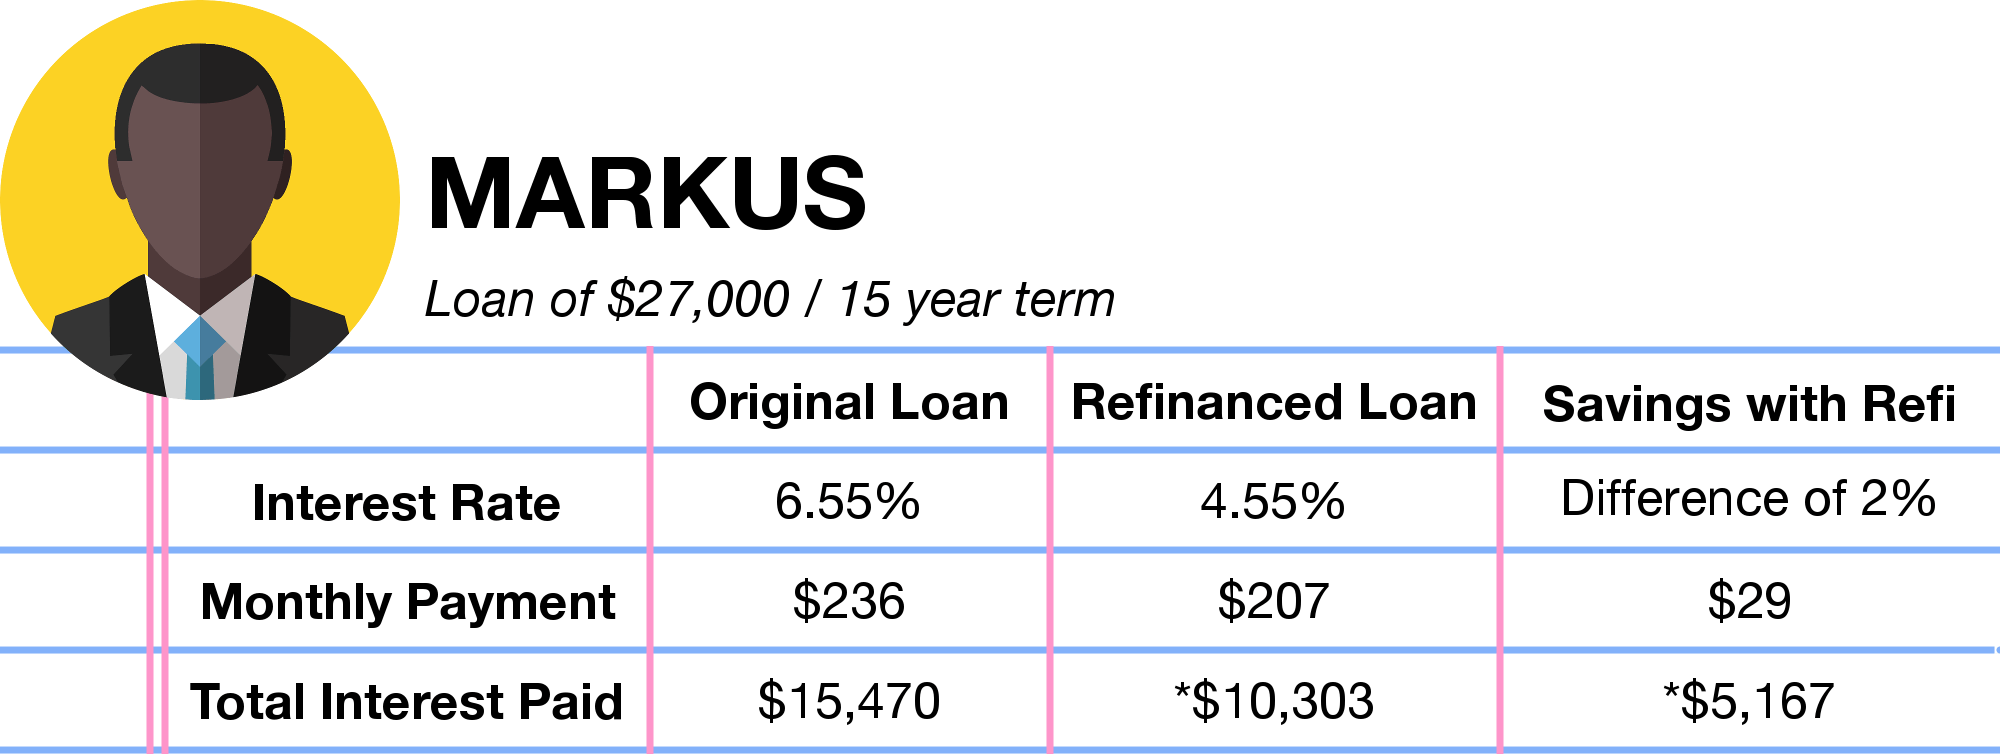 Student Loan Refinance and Consolidation - Markus